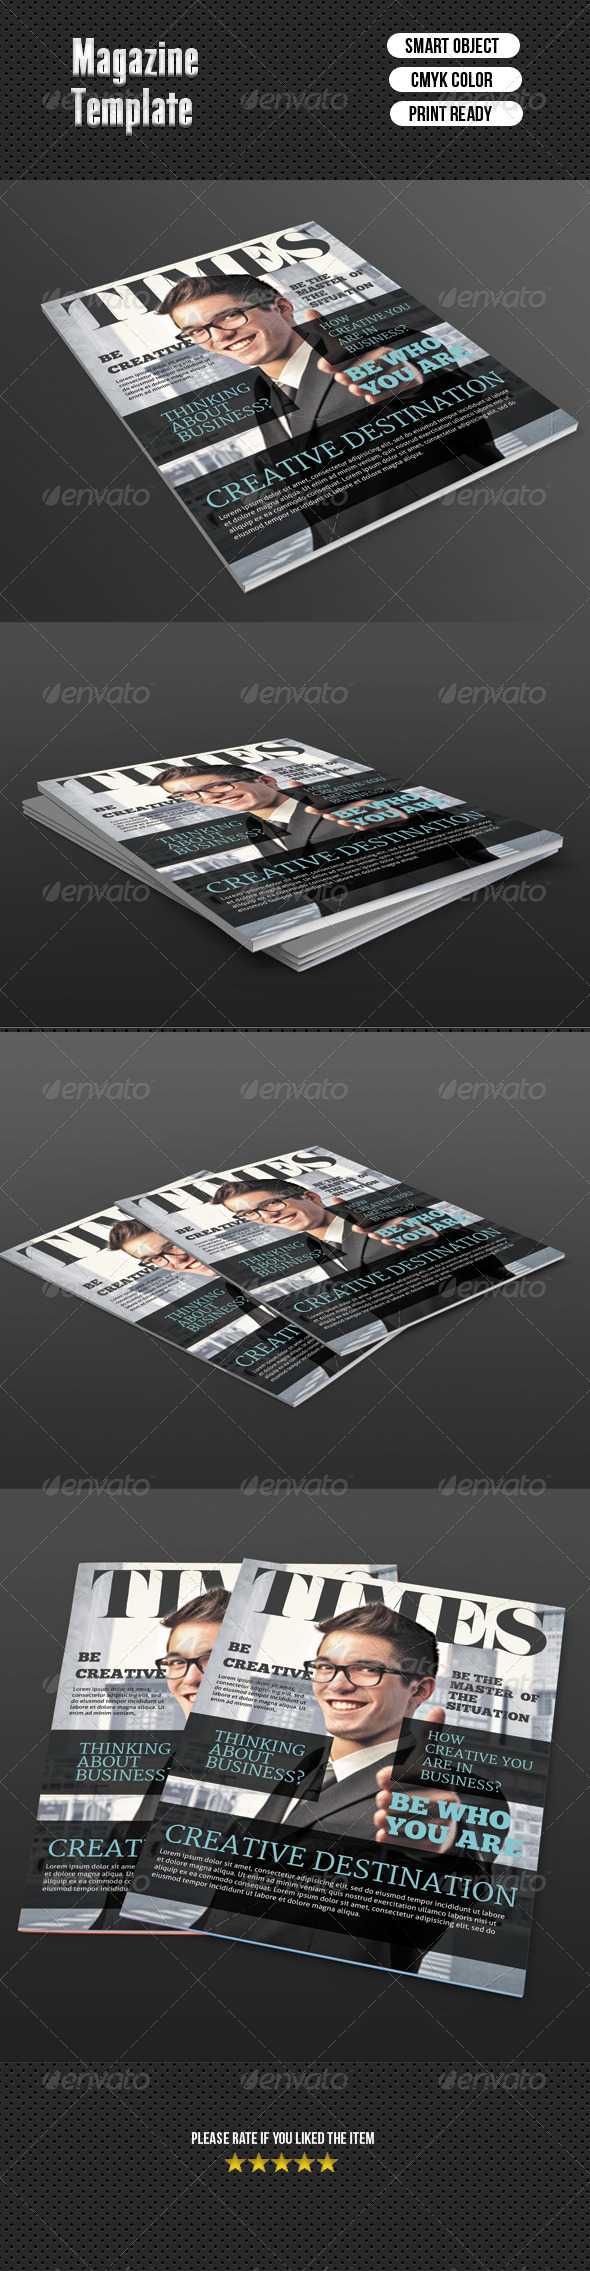 Magazine Cover Template - Magazines Print Templates